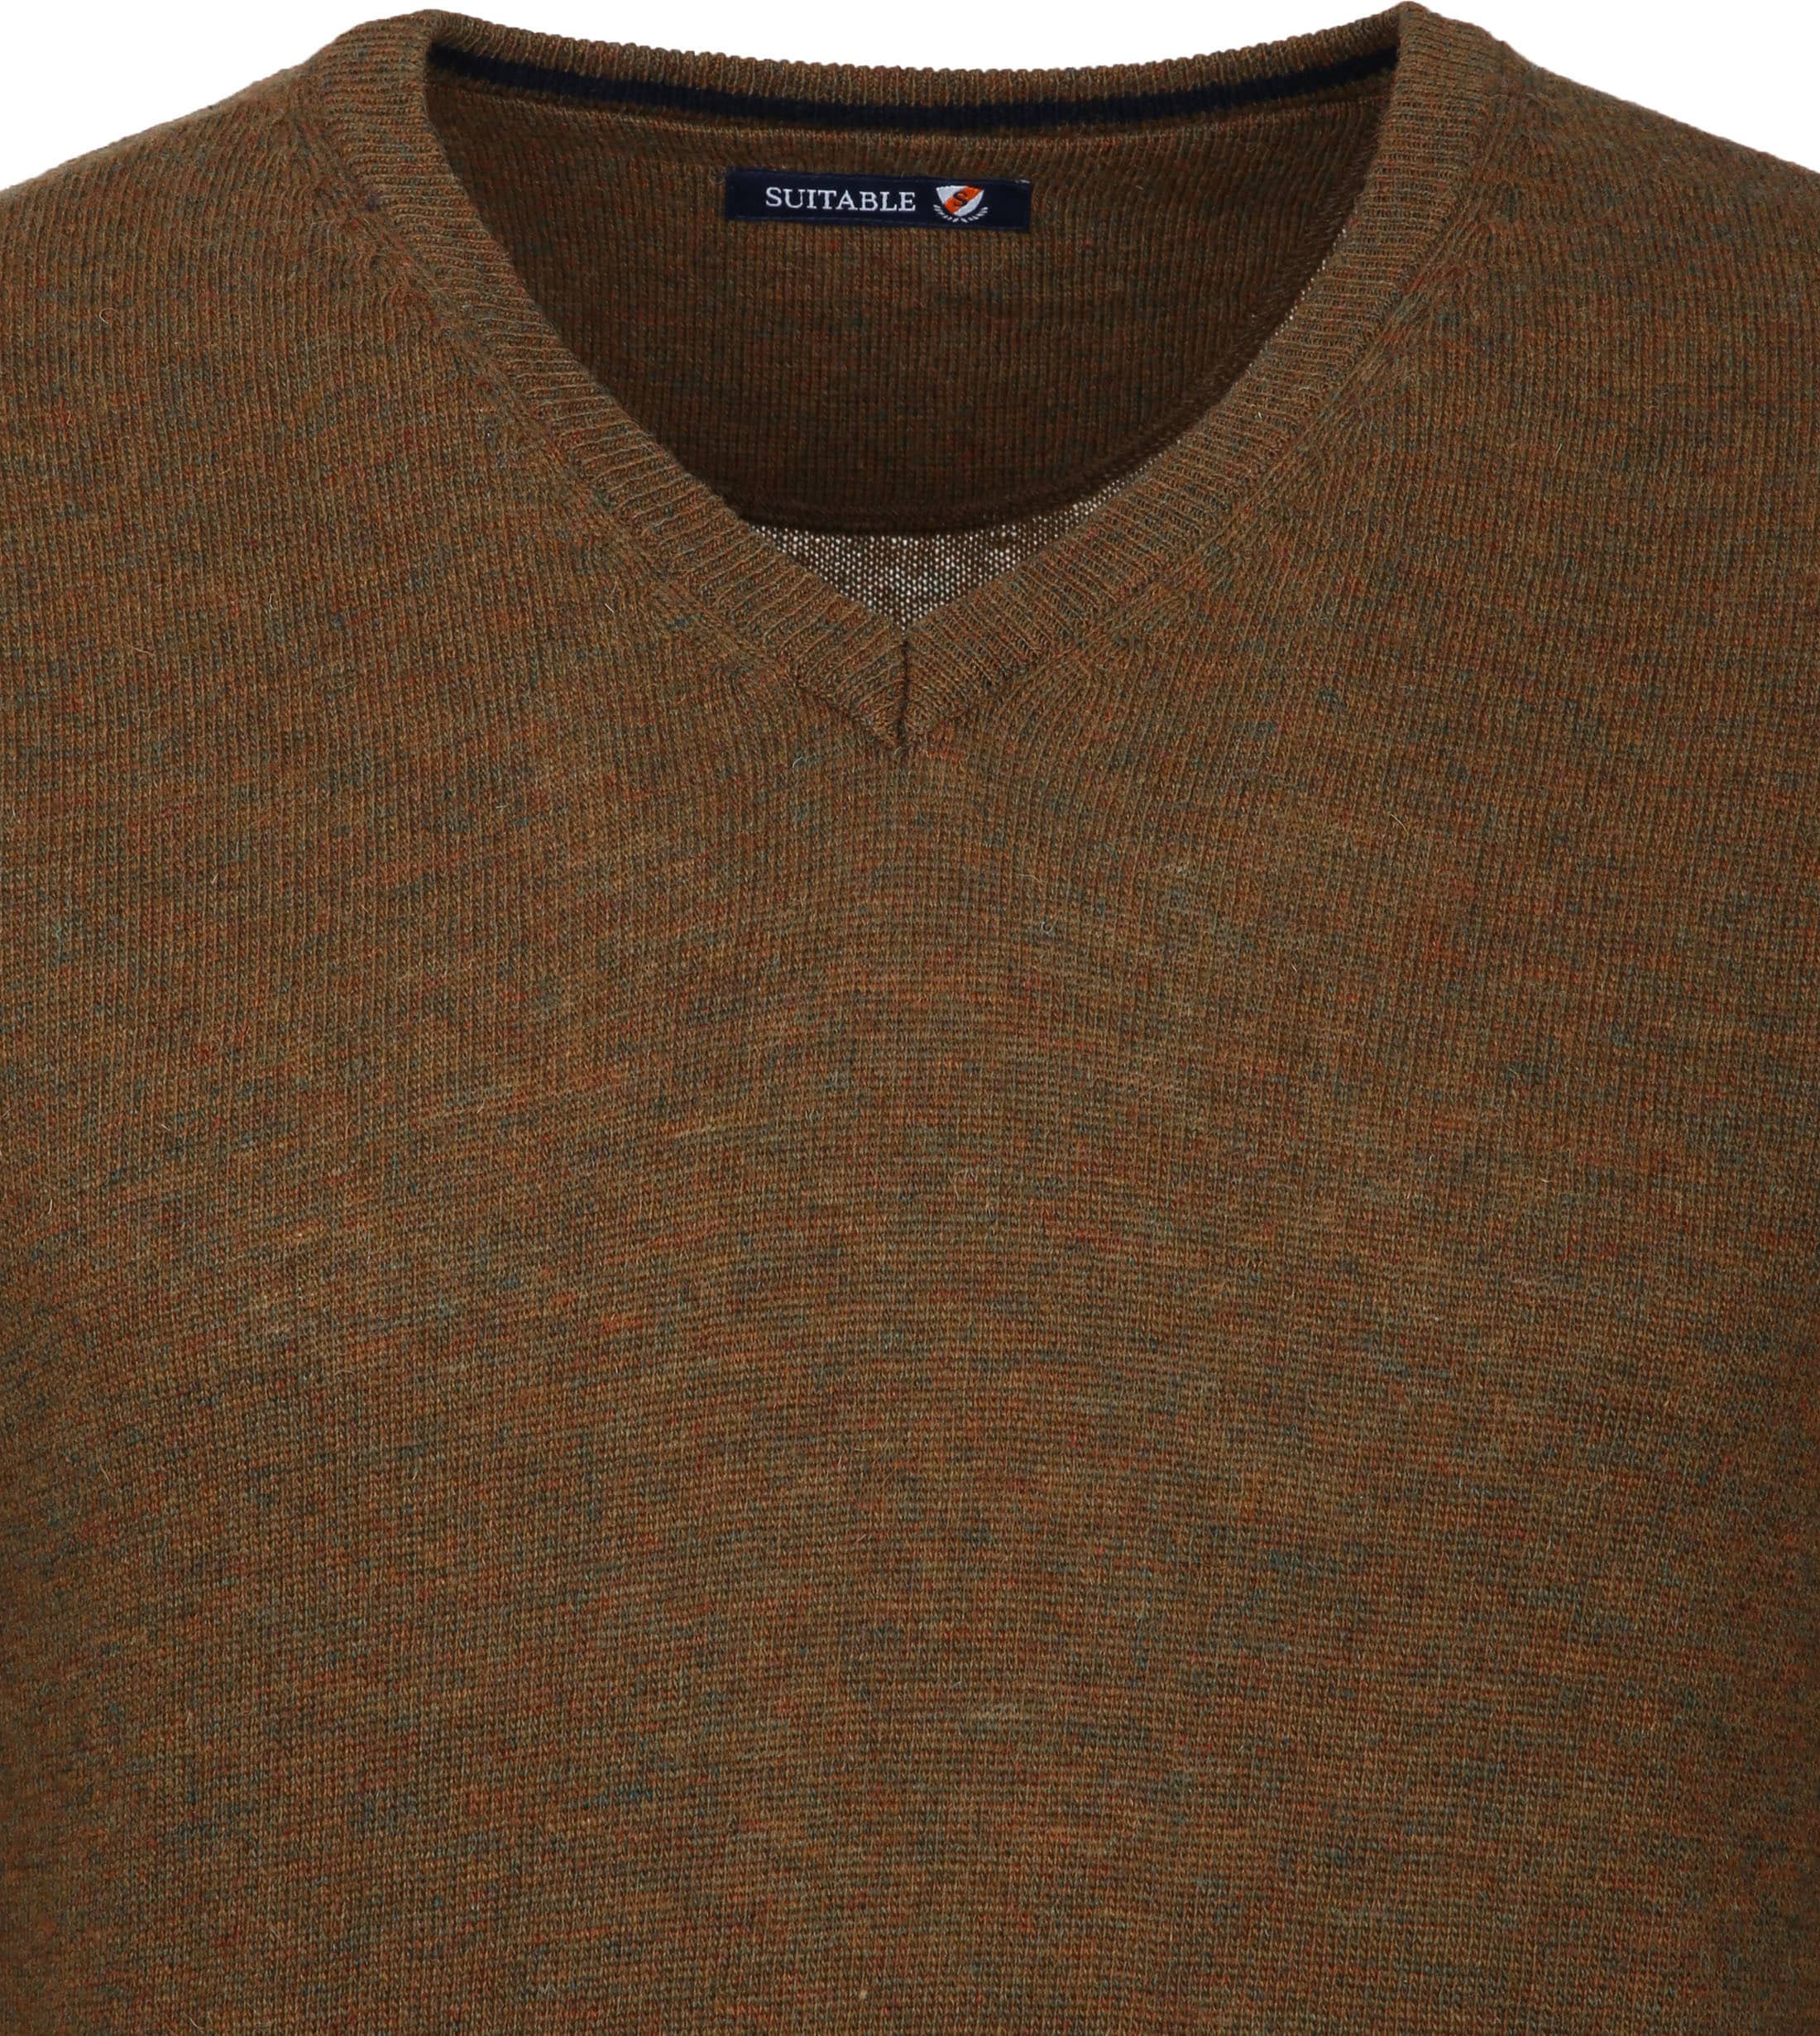 Suitable Pullover V-Neck Lambswool Brown foto 2